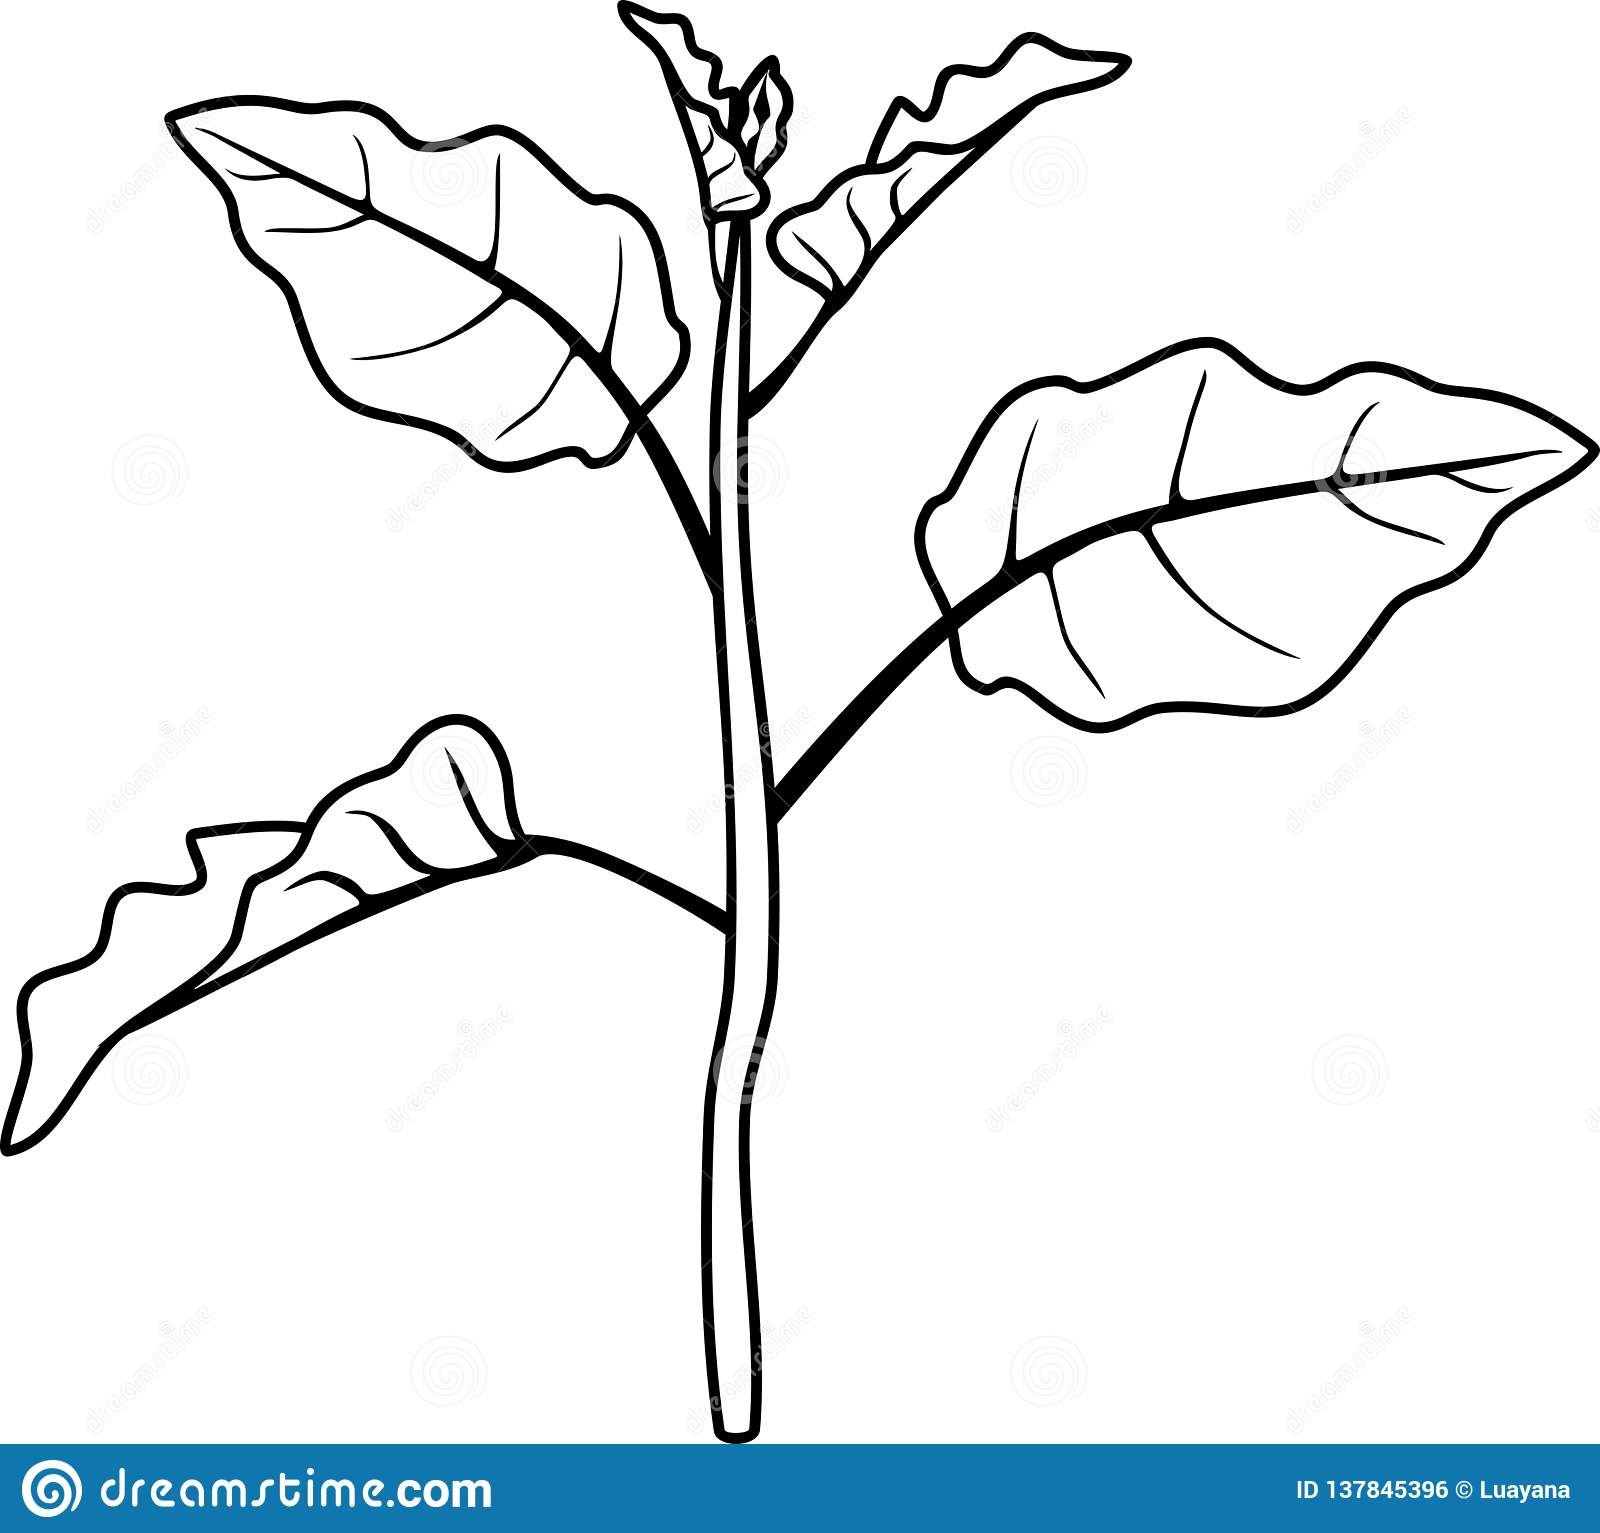 Coloring Page Eggplant Stem With Leaves Stock Vector